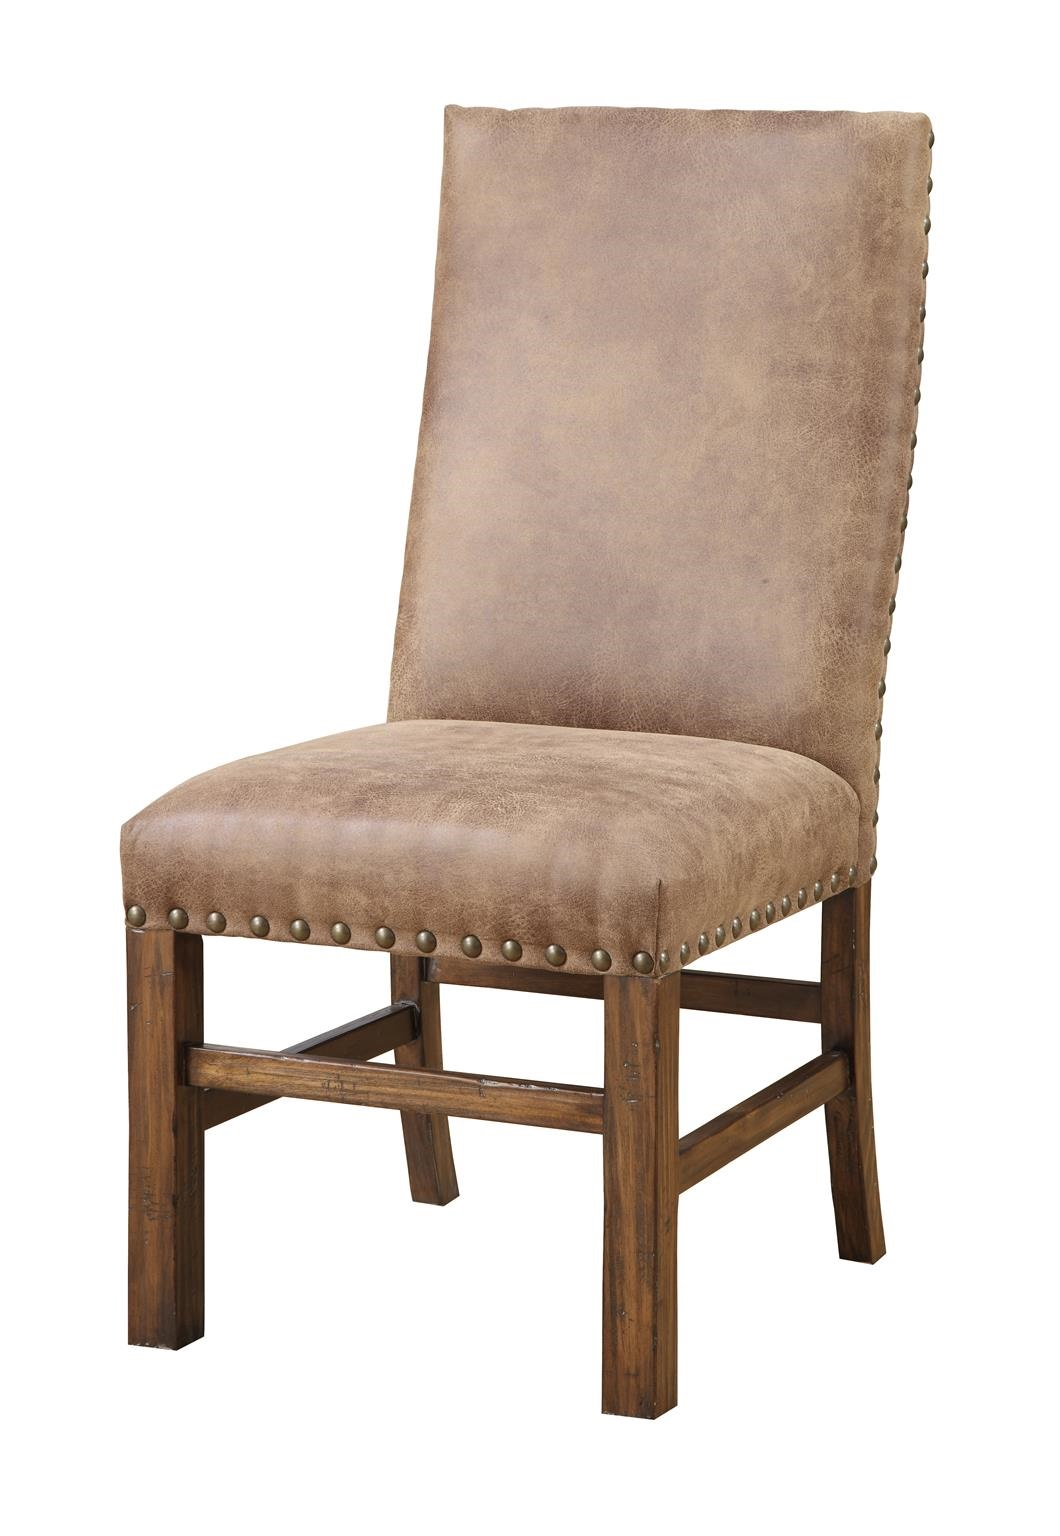 Chambers Creek Upholstered Side Chair by Emerald at Northeast Factory Direct